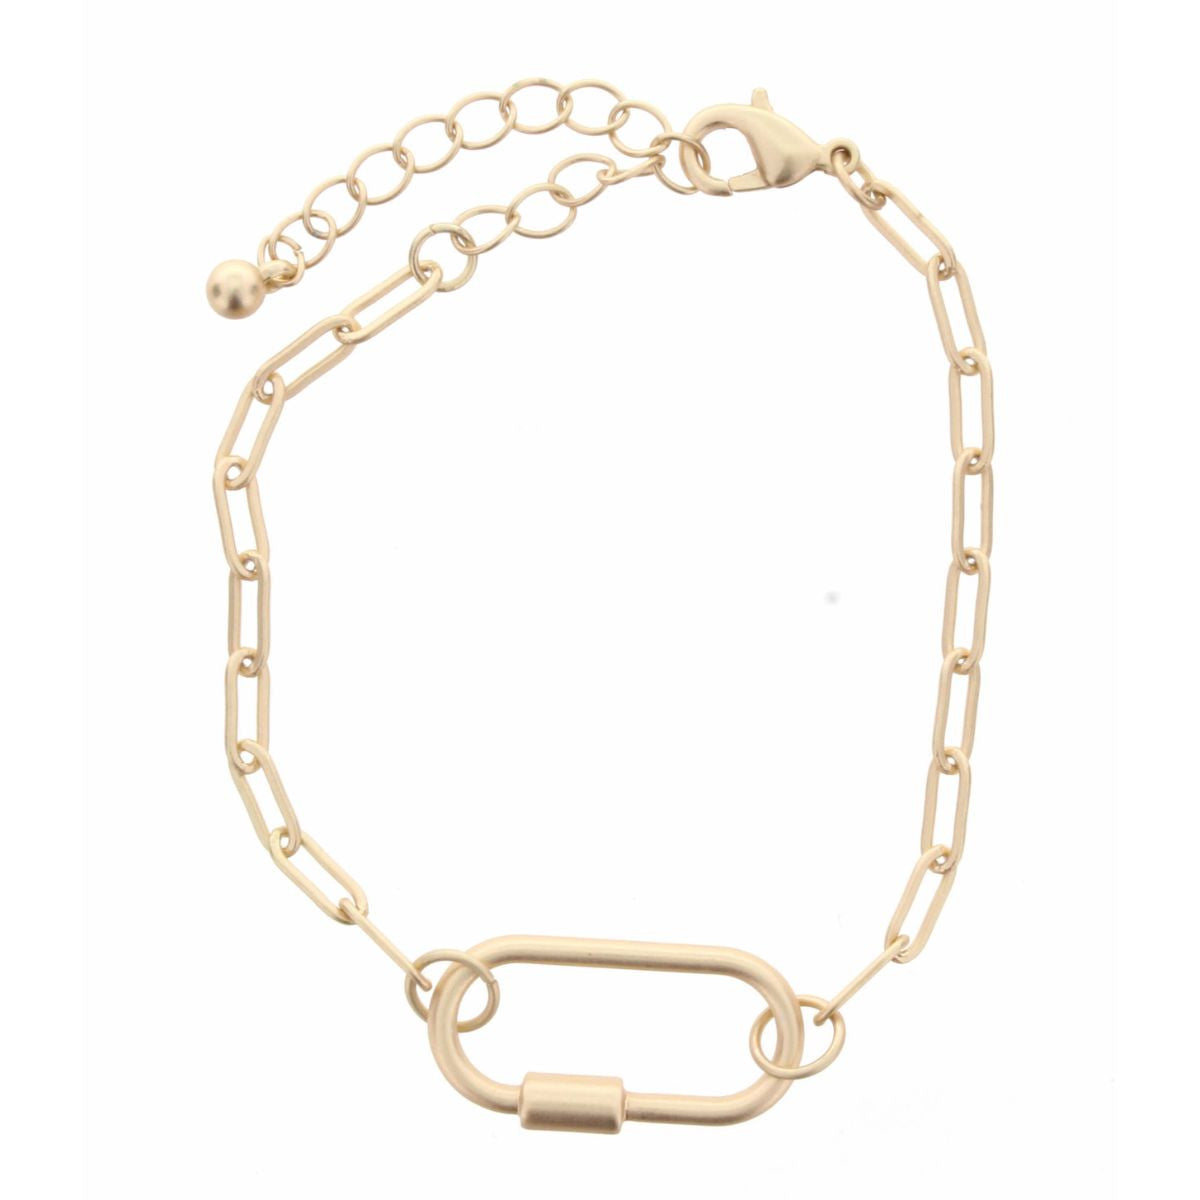 GOLD CHAIN LINK WITH OVAL CARABINER BRACELET, 2